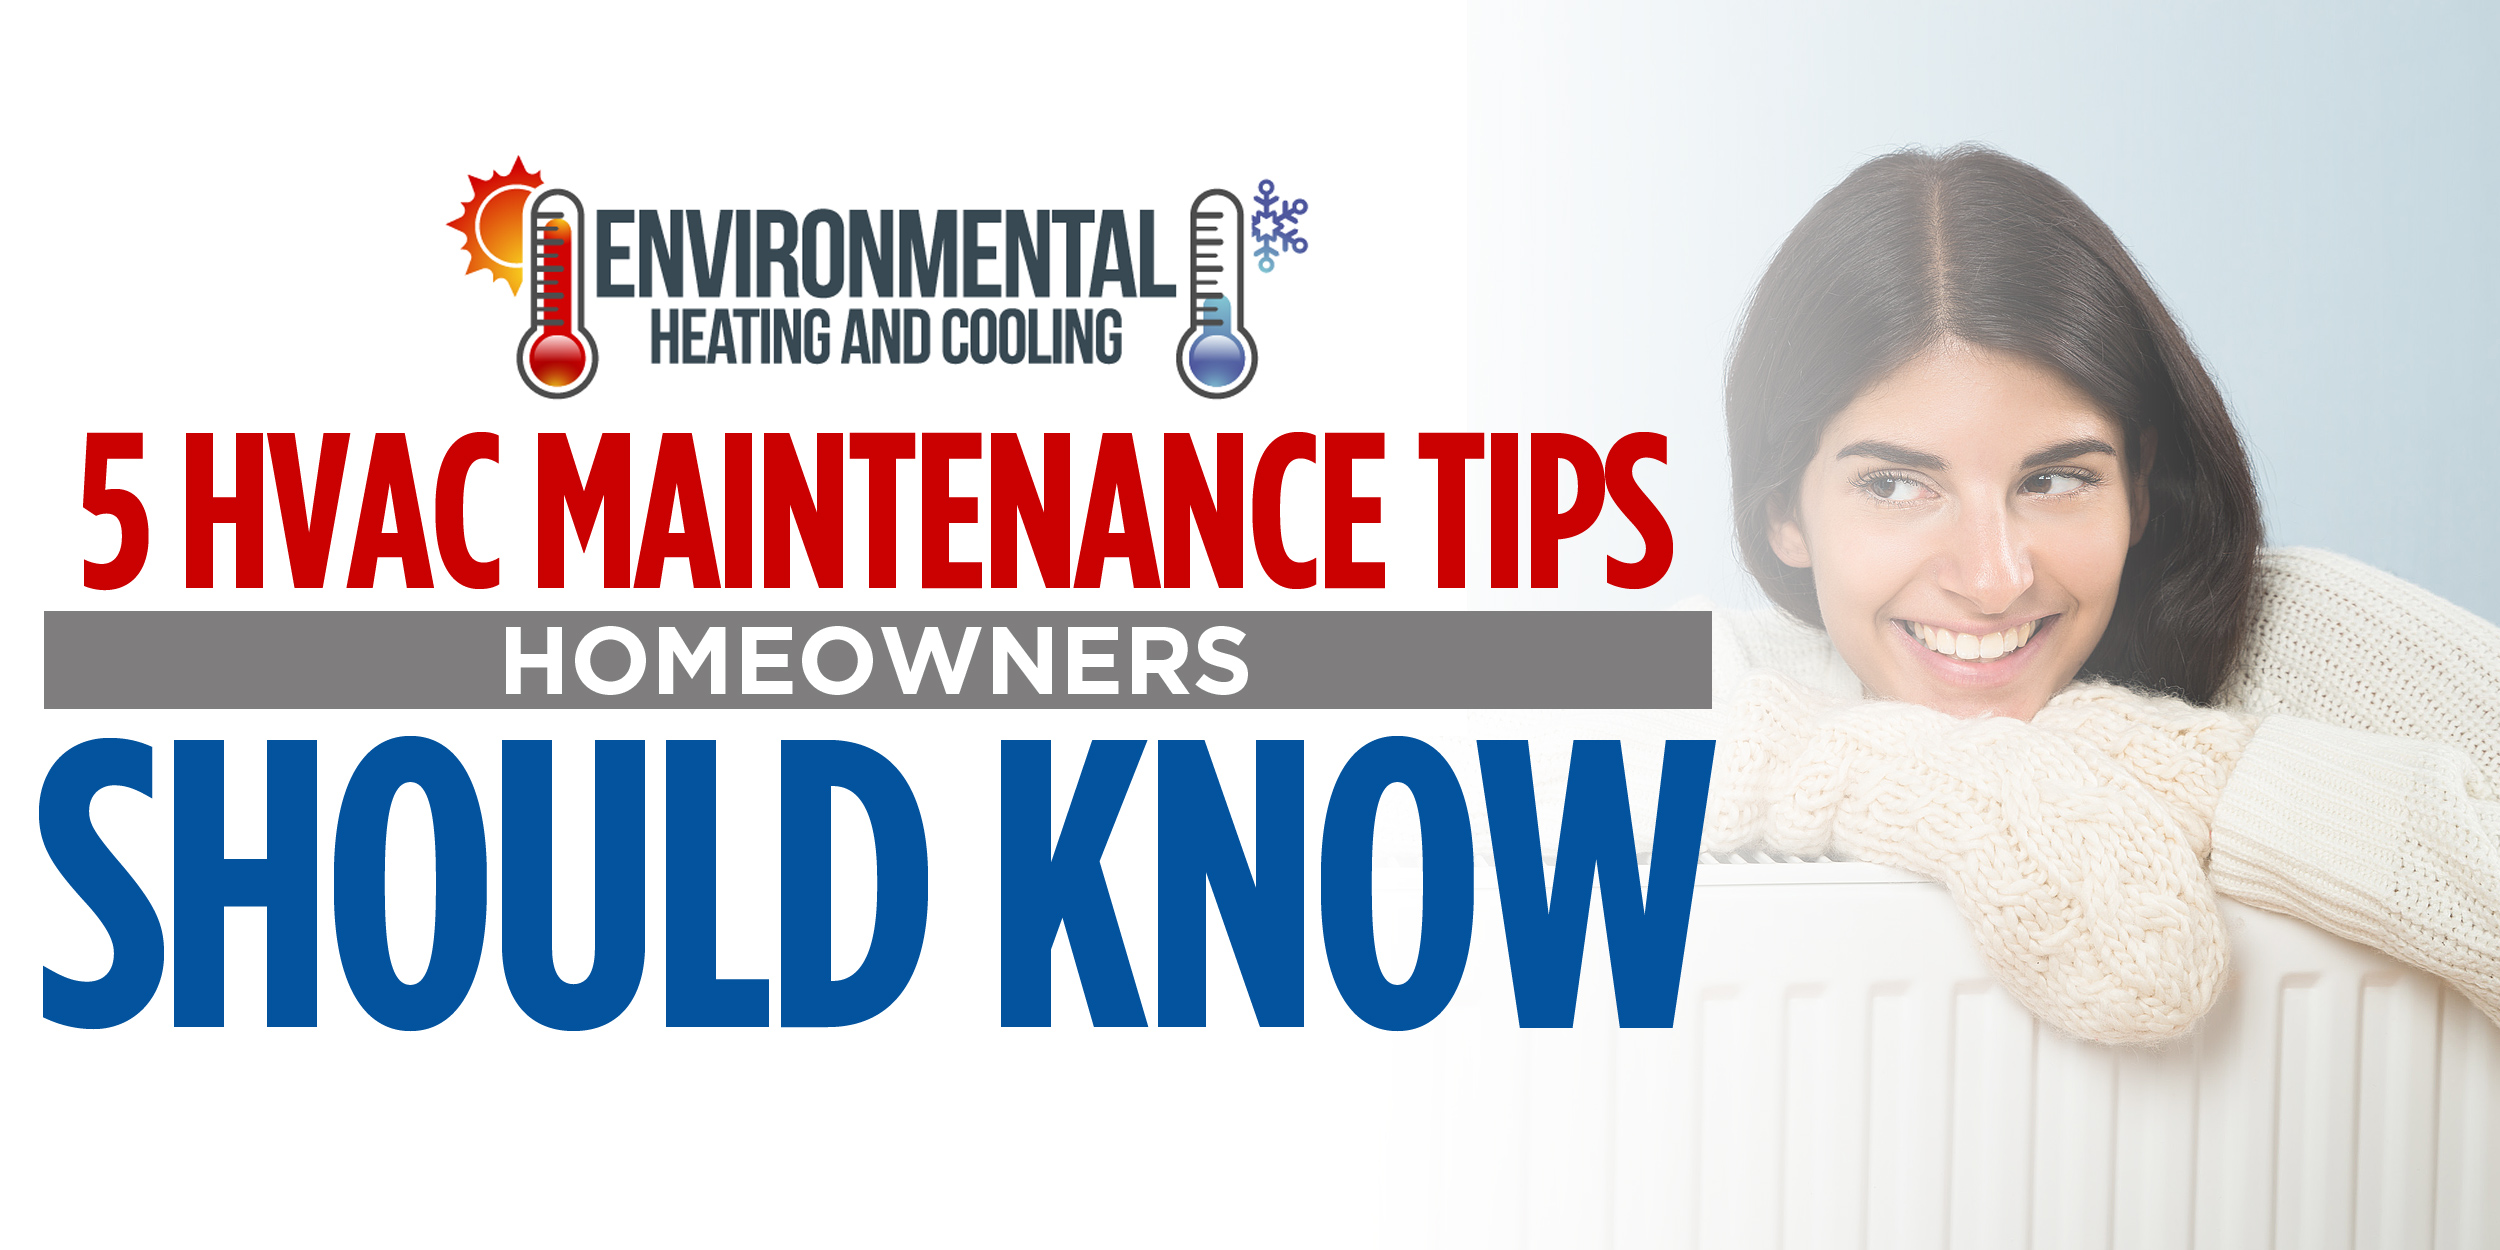 5 HVAC Maintenance Tips Homeowners Should Know